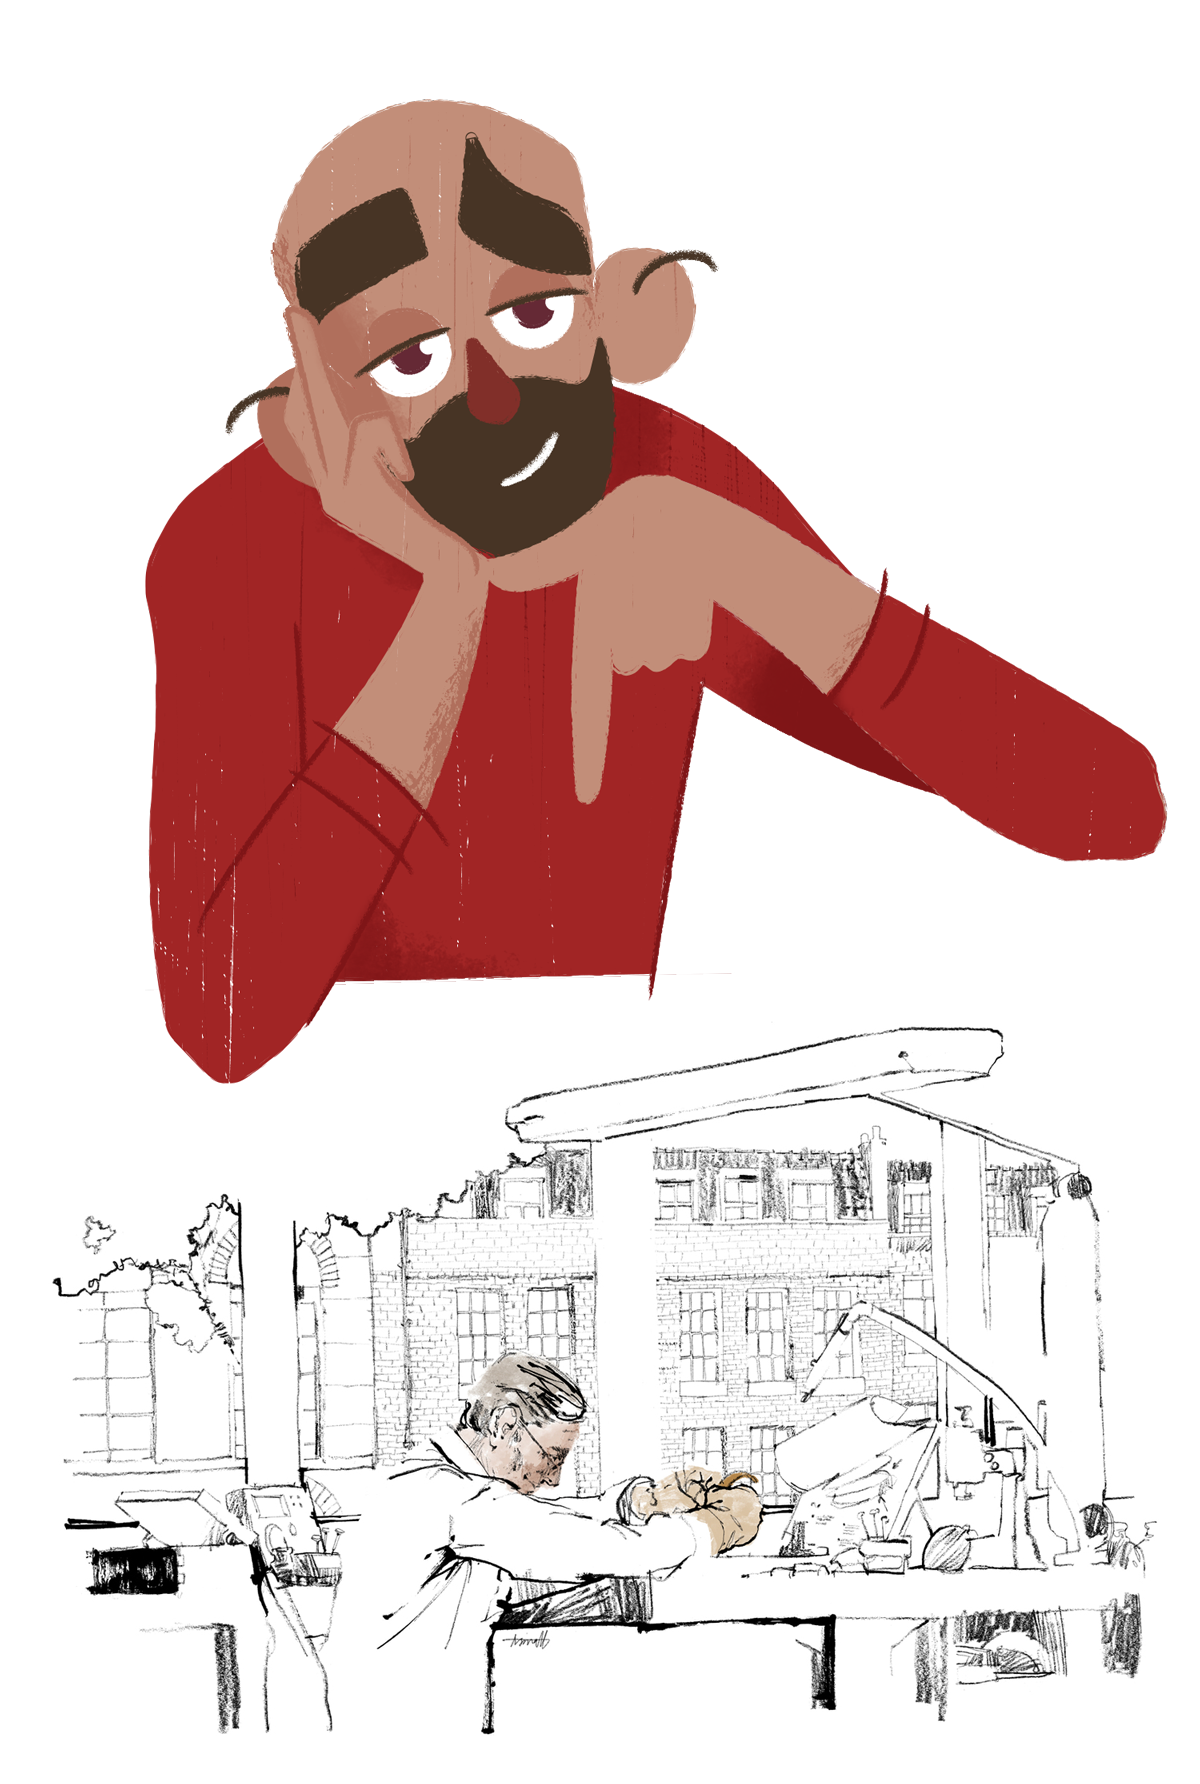 Wow clipart expressive. Ste illustrates illustrations that